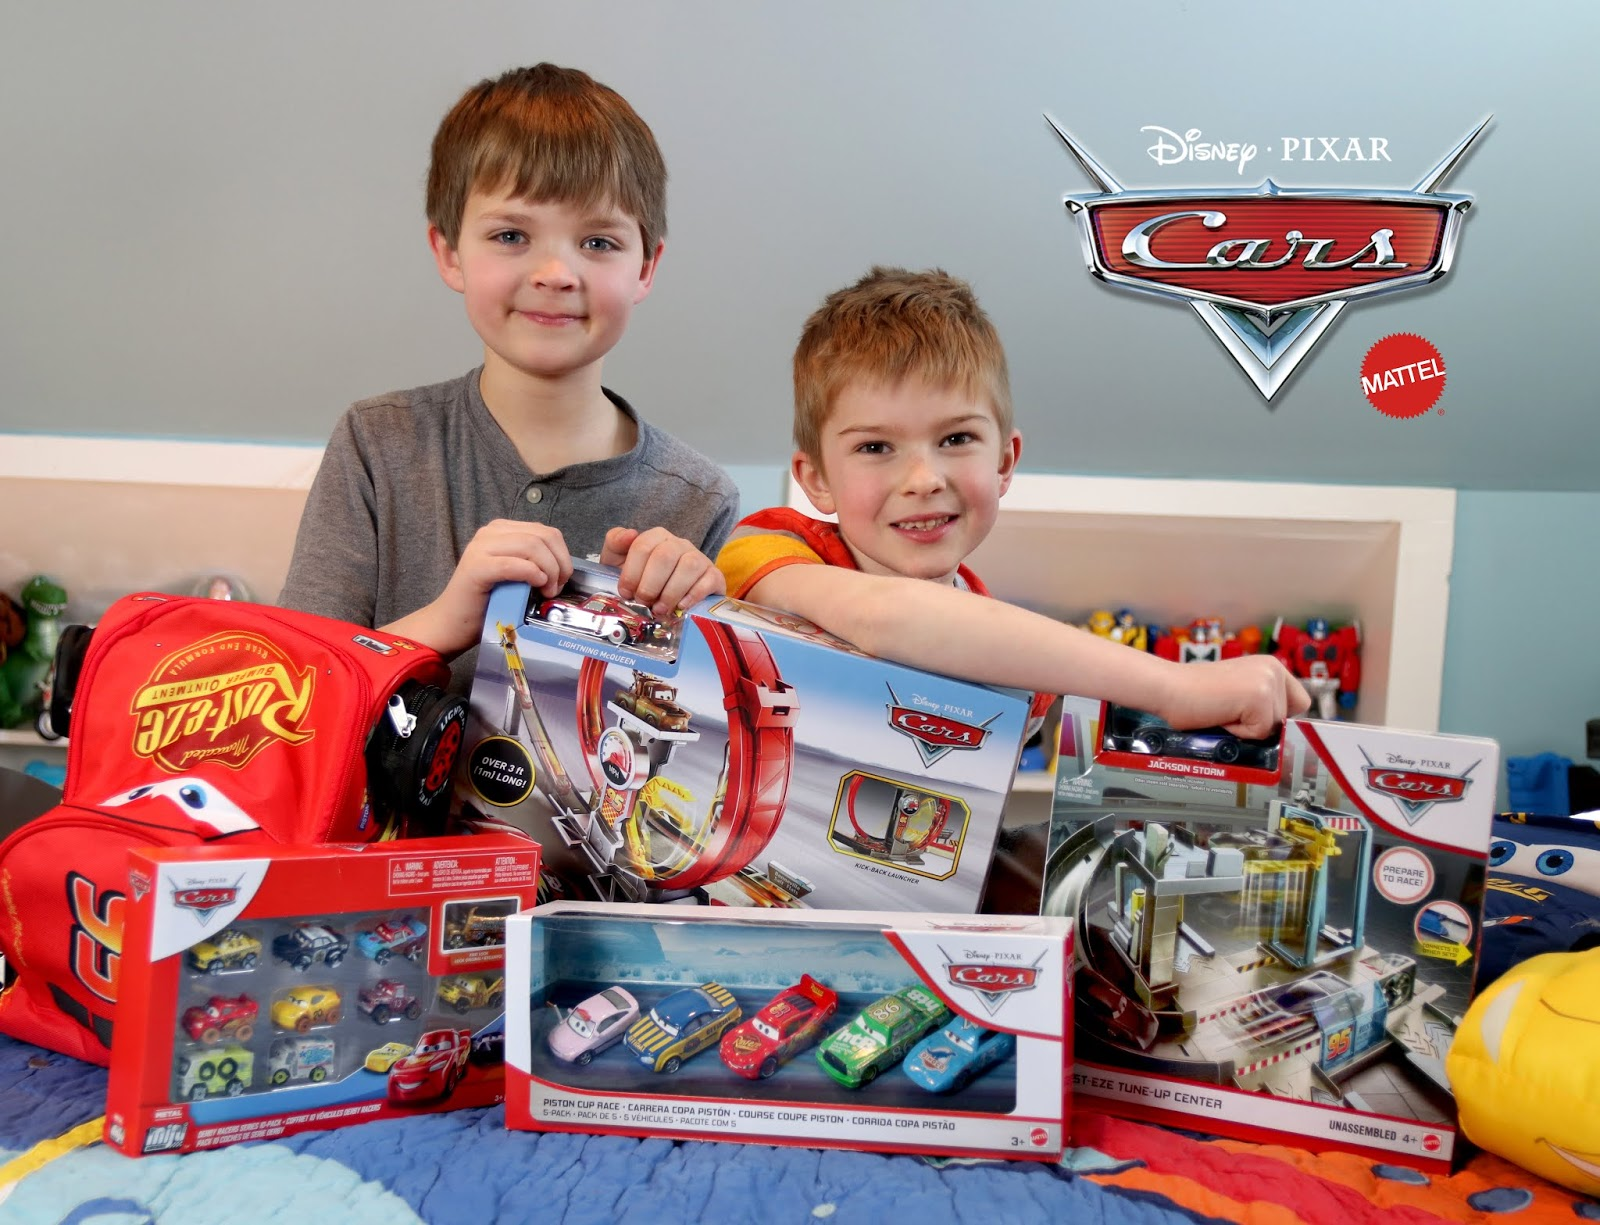 Disney·Pixar Cars Week (February 8th-16th) mattel